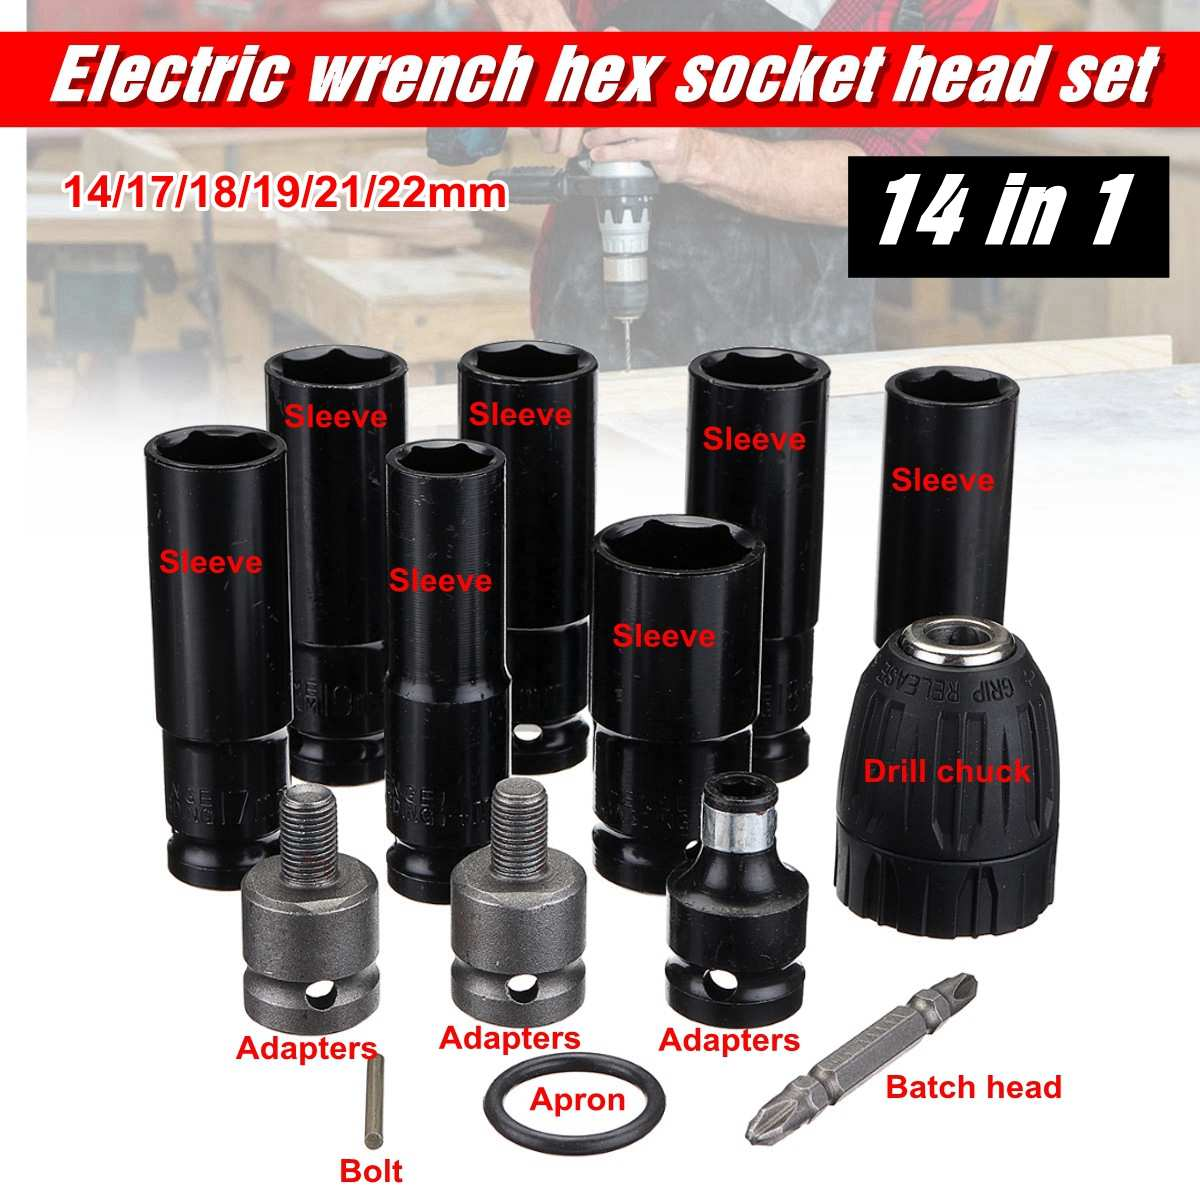 Electric Wrench Screwdriver Hex Socket Head Kits Set For Impact Wrench Drill